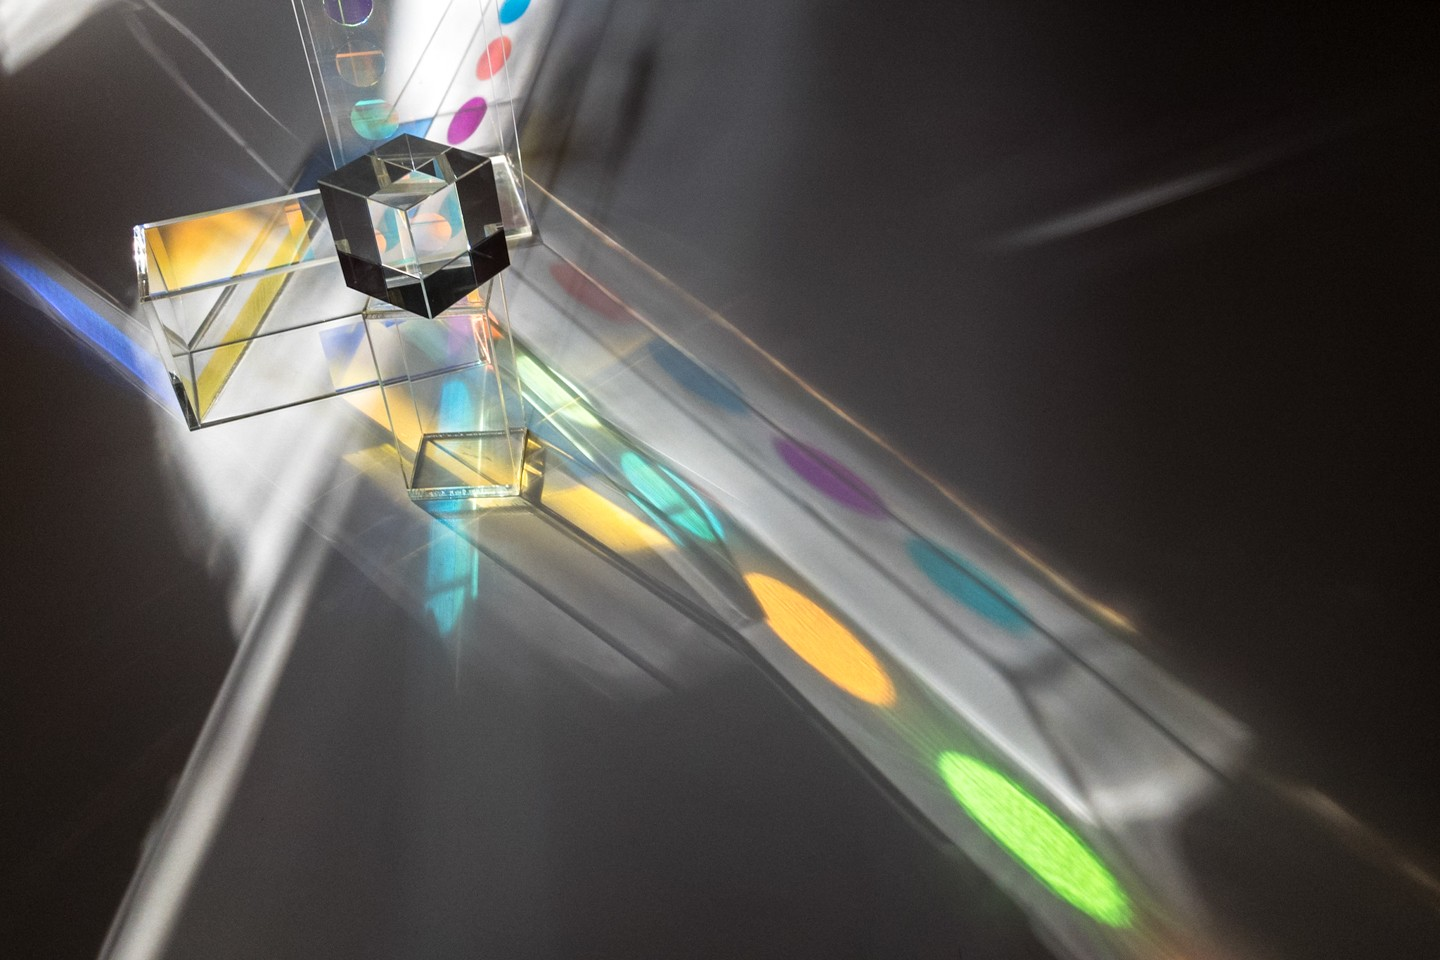 Acrylic sculpture with colored film and crystal cube, activated by light.